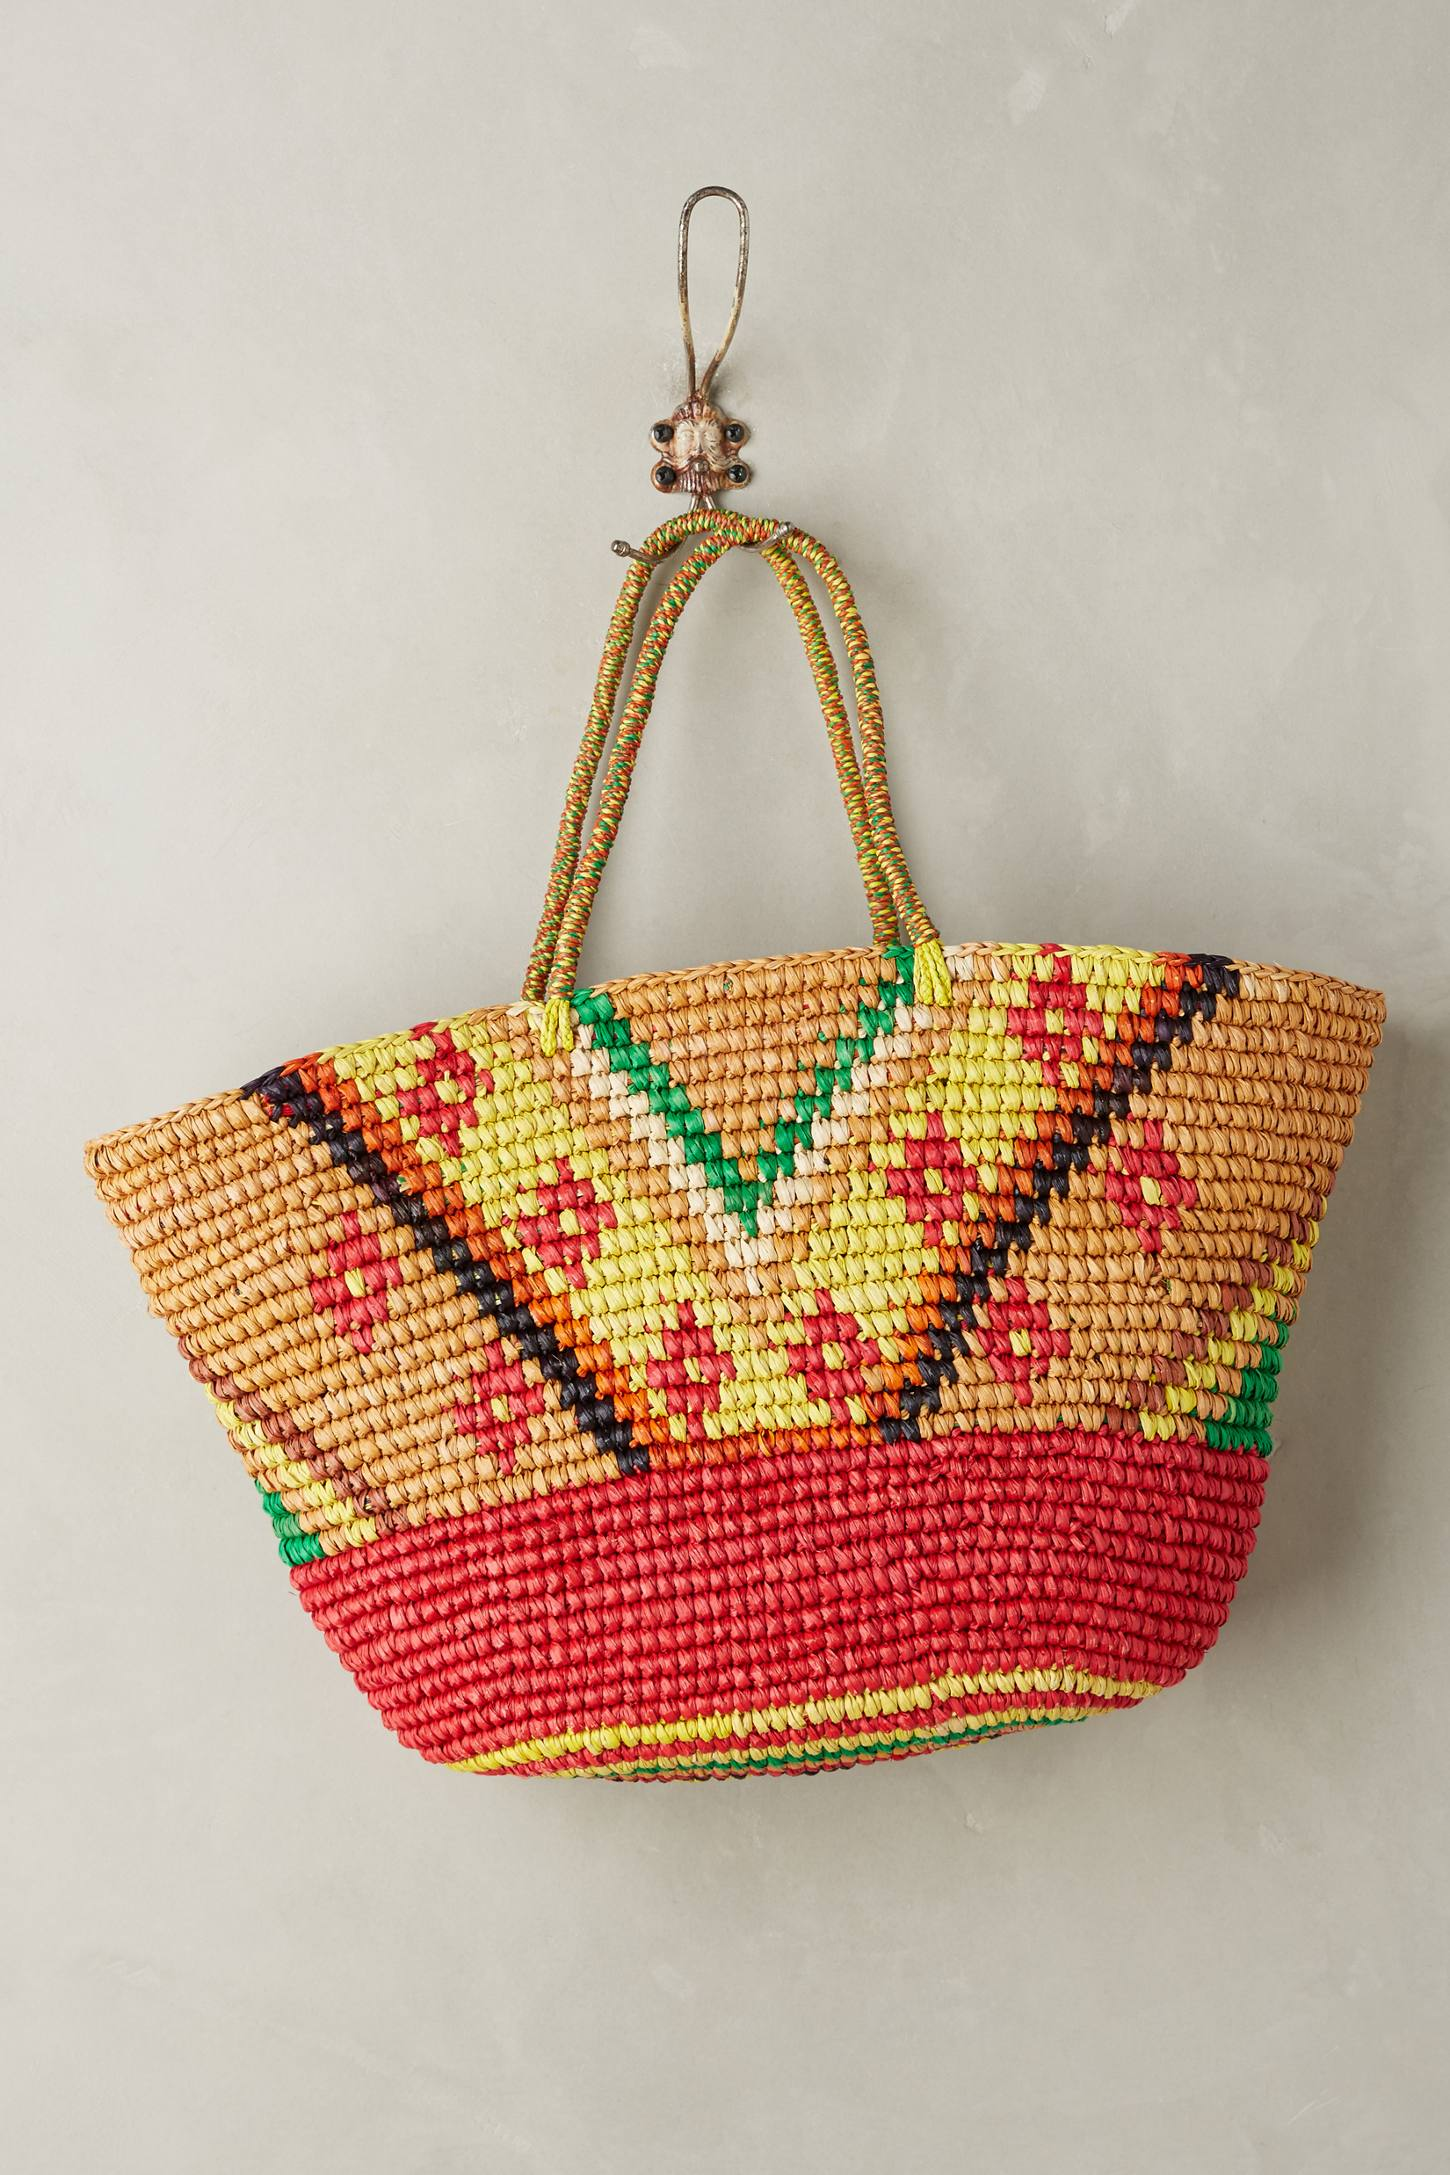 Slide View: 1: Frayed Sunshine Straw Tote